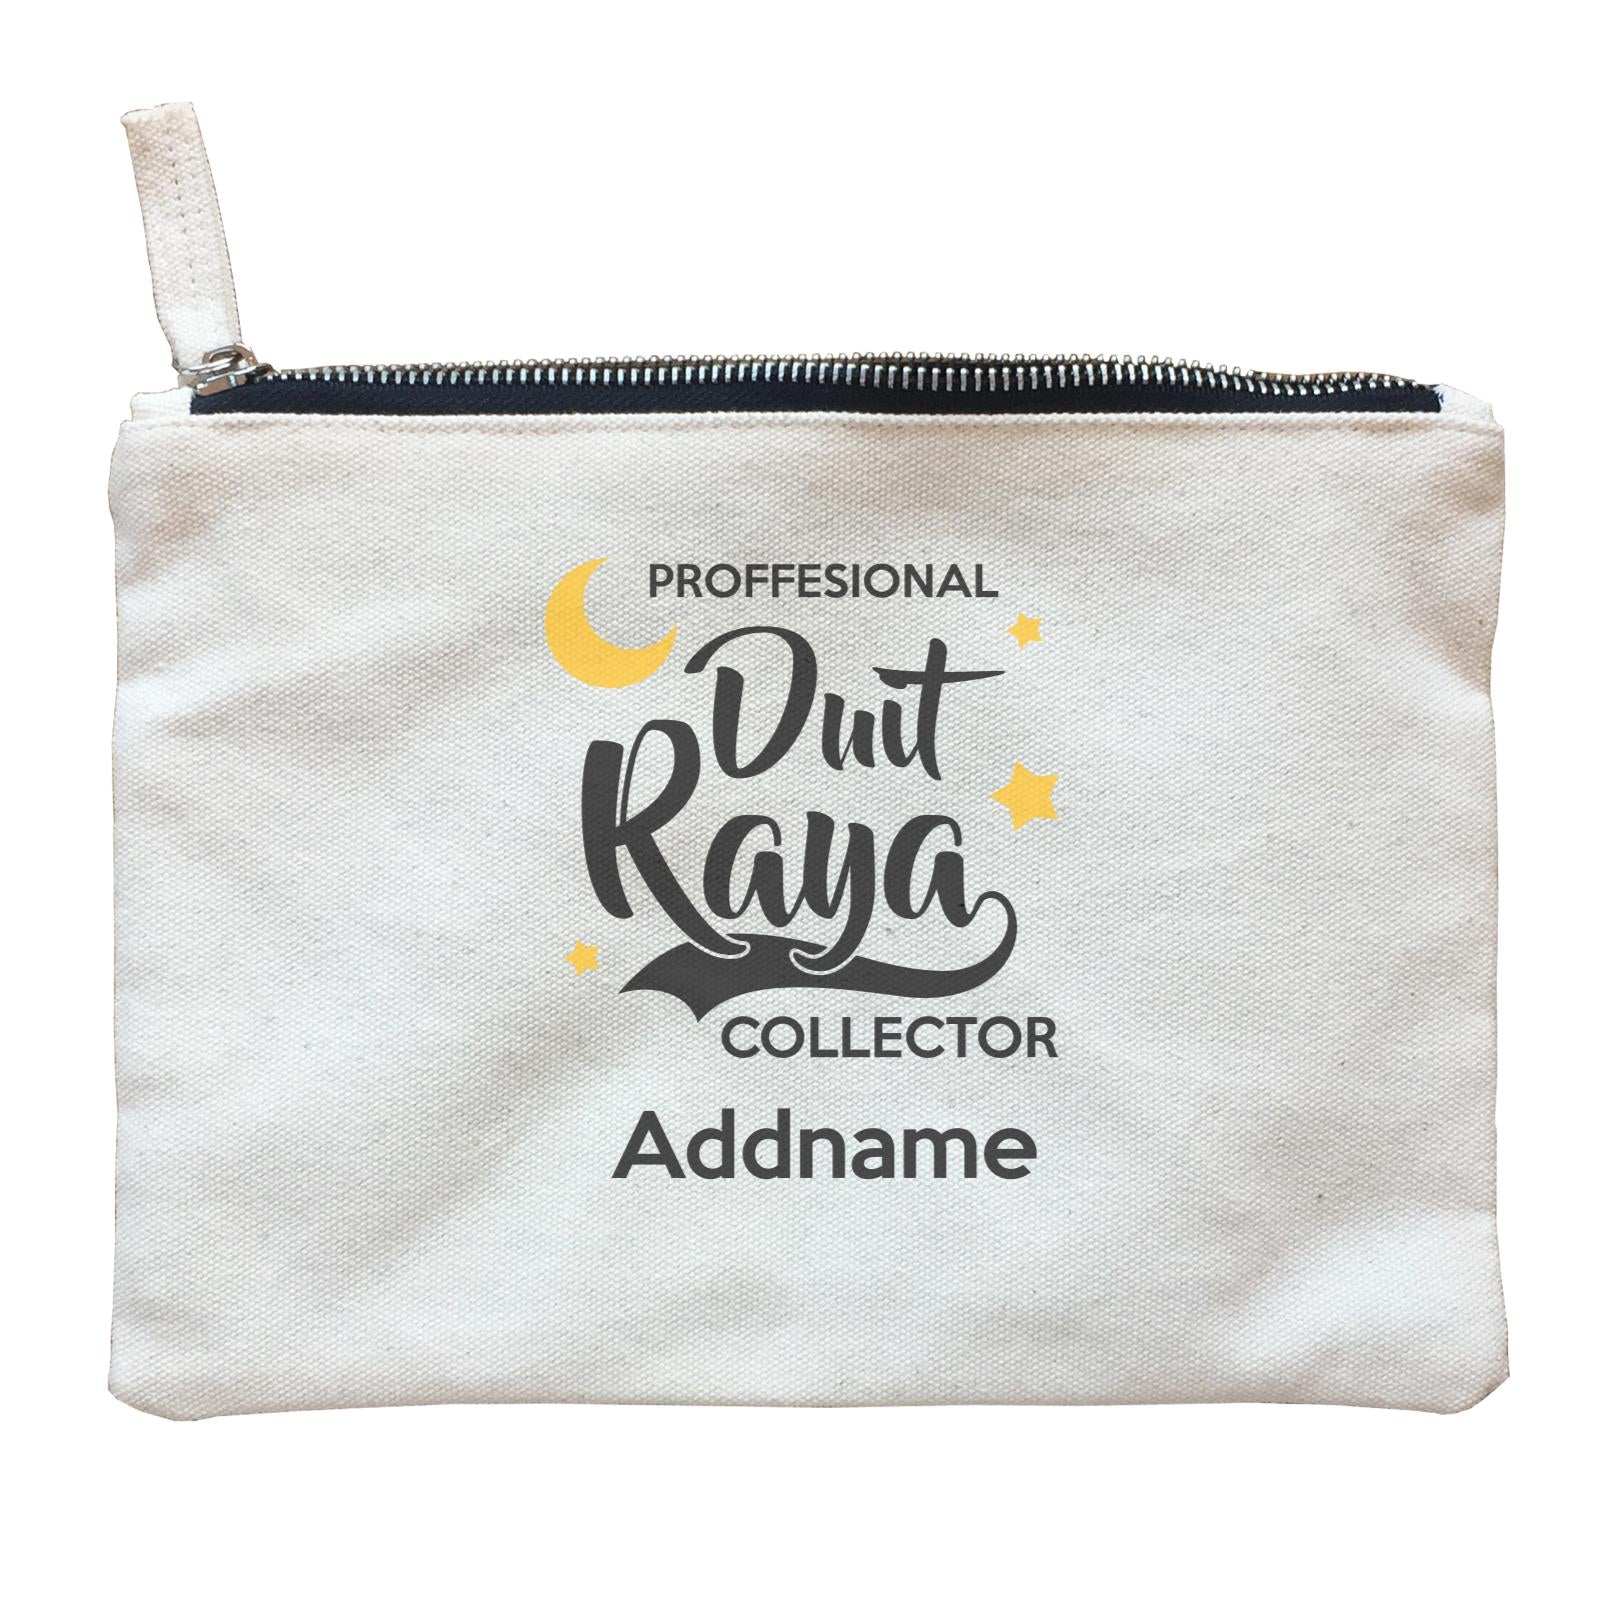 Raya Typography Professional Duit Raya Collector Addname Zipper Pouch